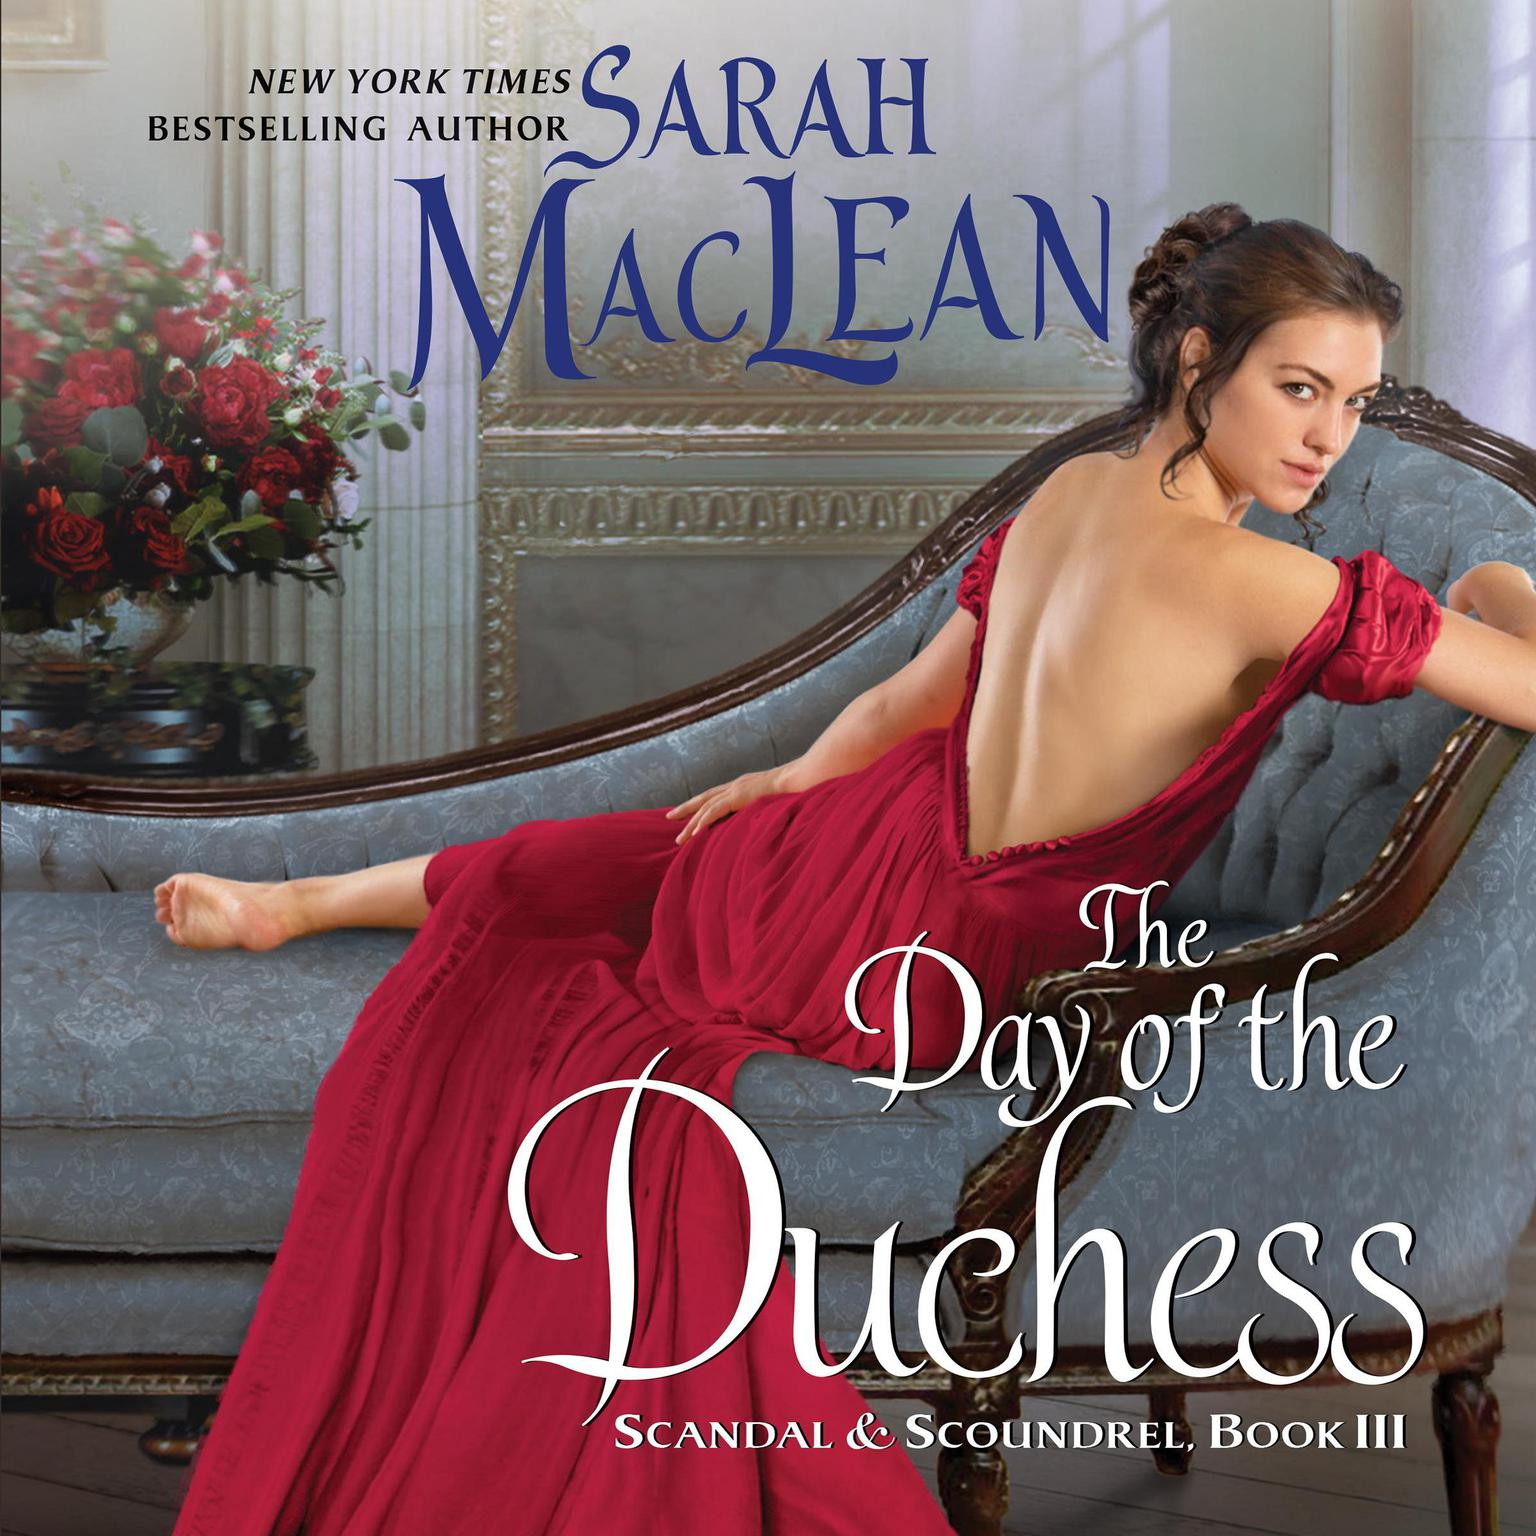 Printable The Day of the Duchess: Scandal & Scoundrel, Book III Audiobook Cover Art